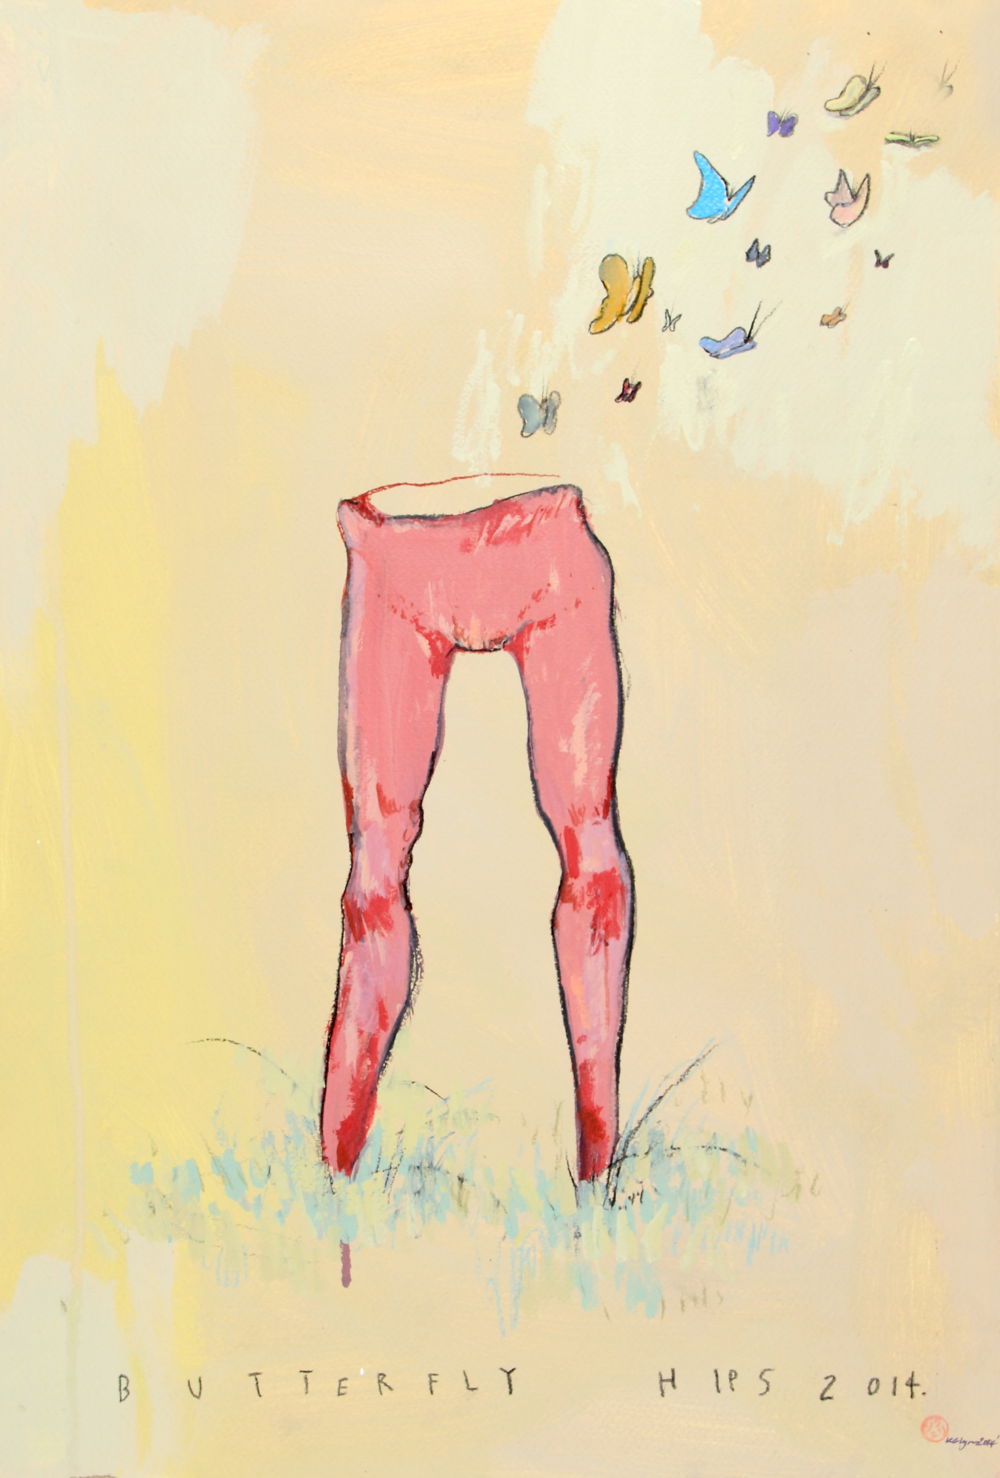 Butterfly Hips 2014, 2014 [private collection NY, NY] Acrylic on paper 15 x 22 in.